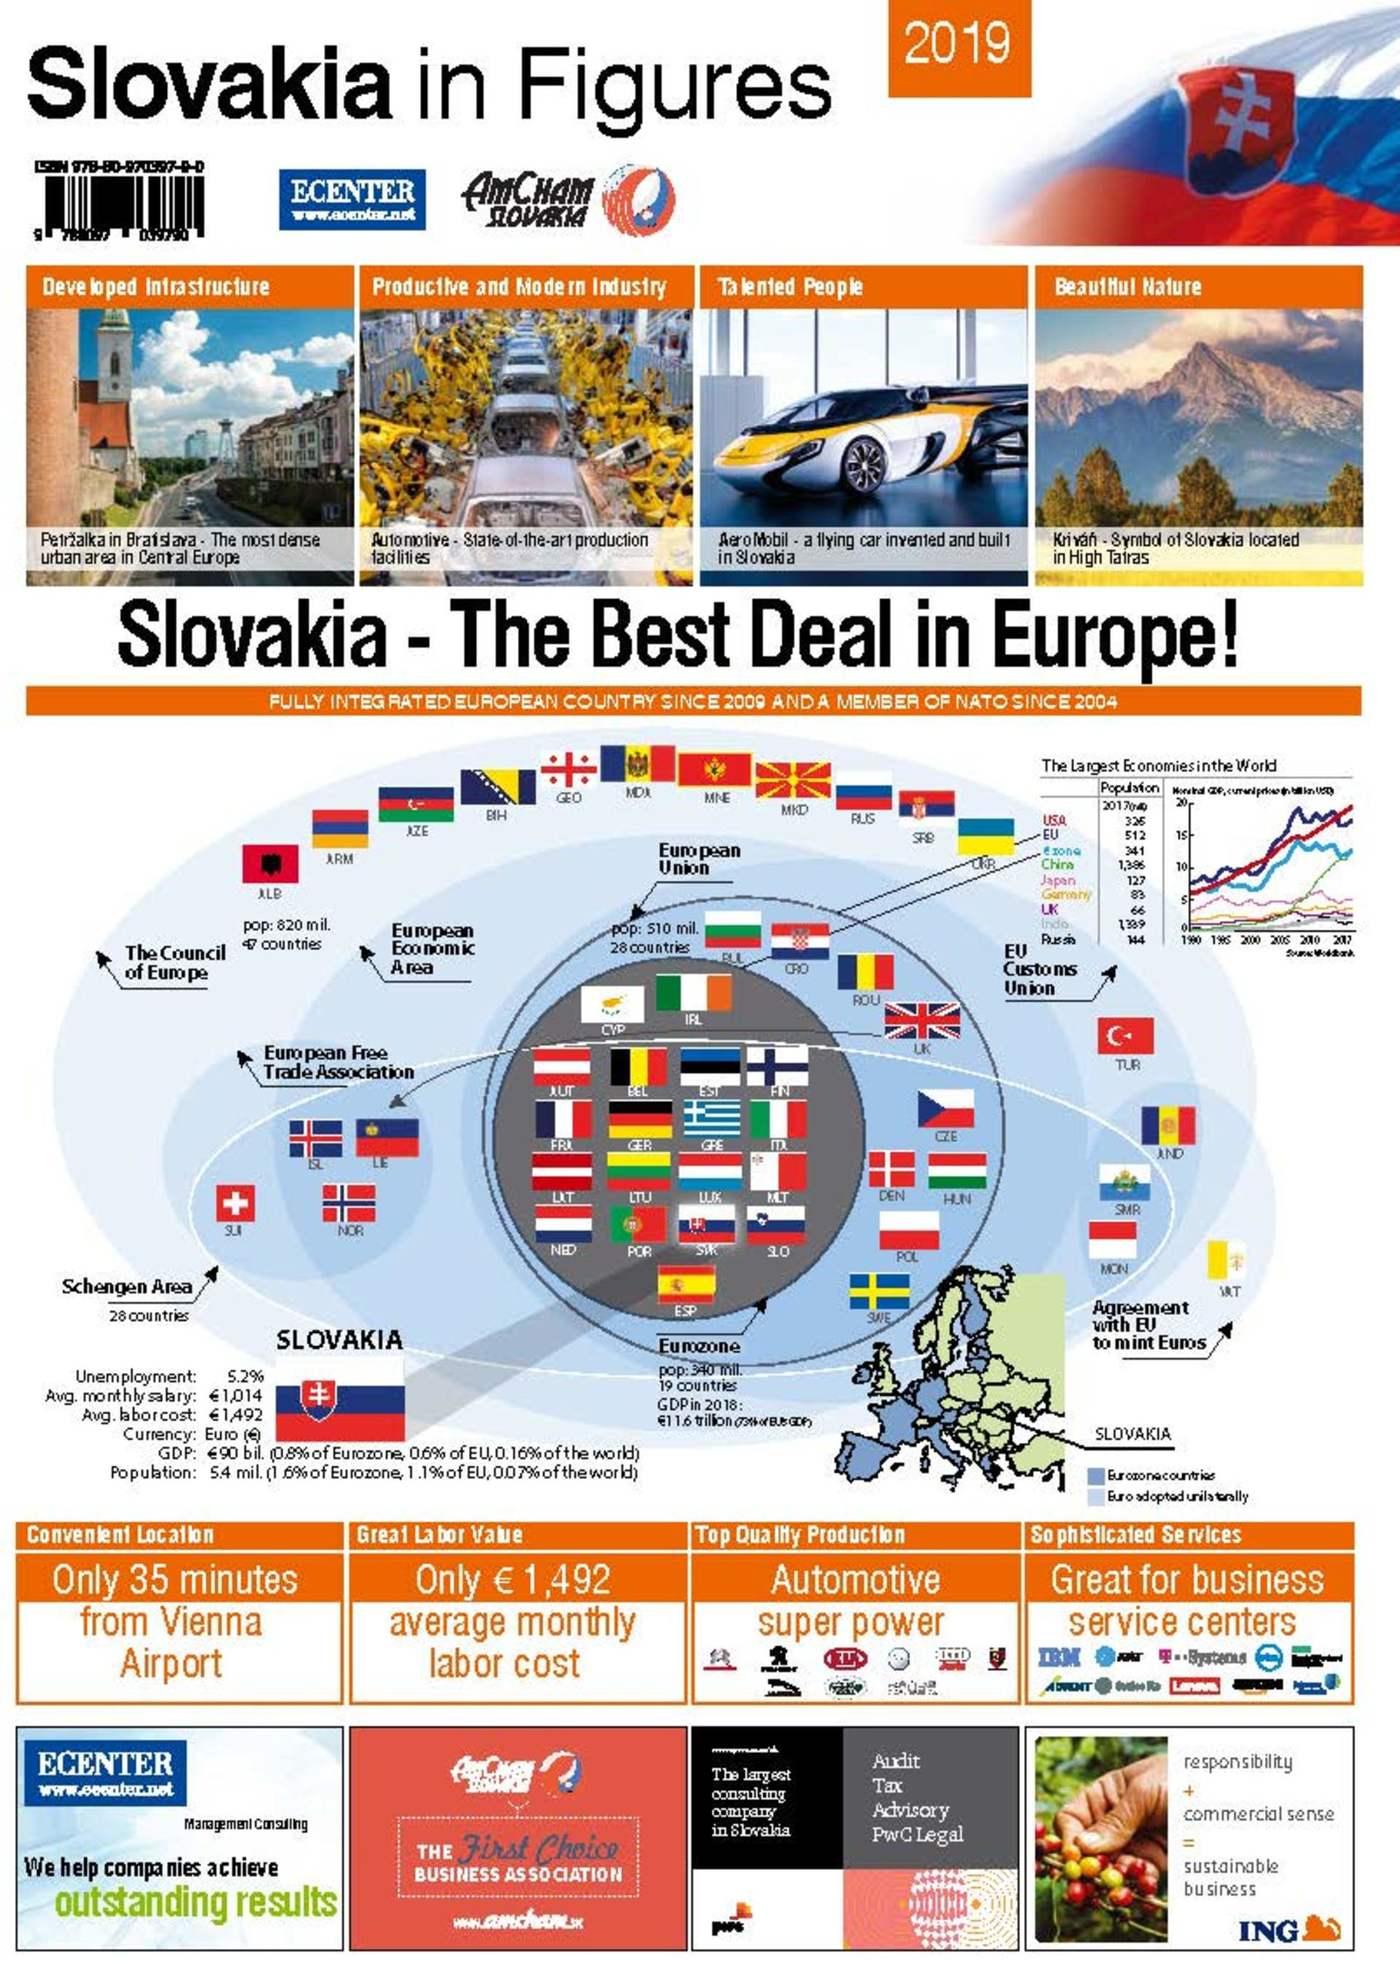 slovakia-in-figures-2019-preview_Page_1.jpg